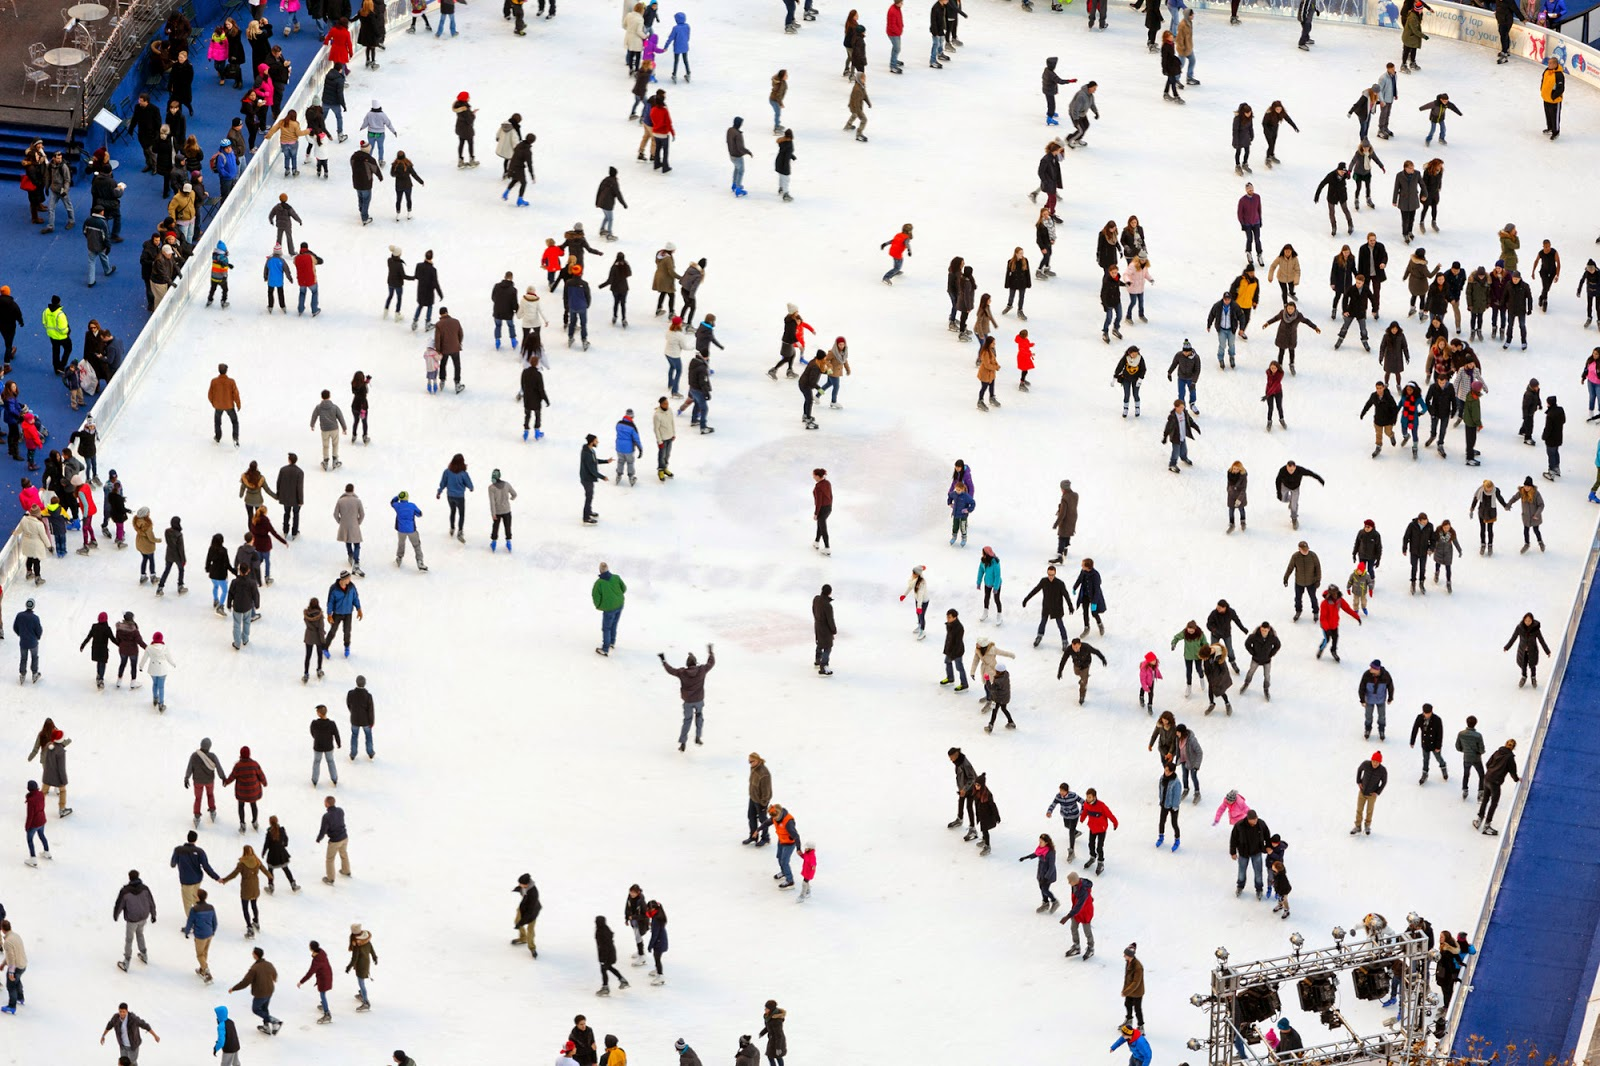 Bryant Park Blog: February 2015 for Crowd Of People Top View Png  45hul